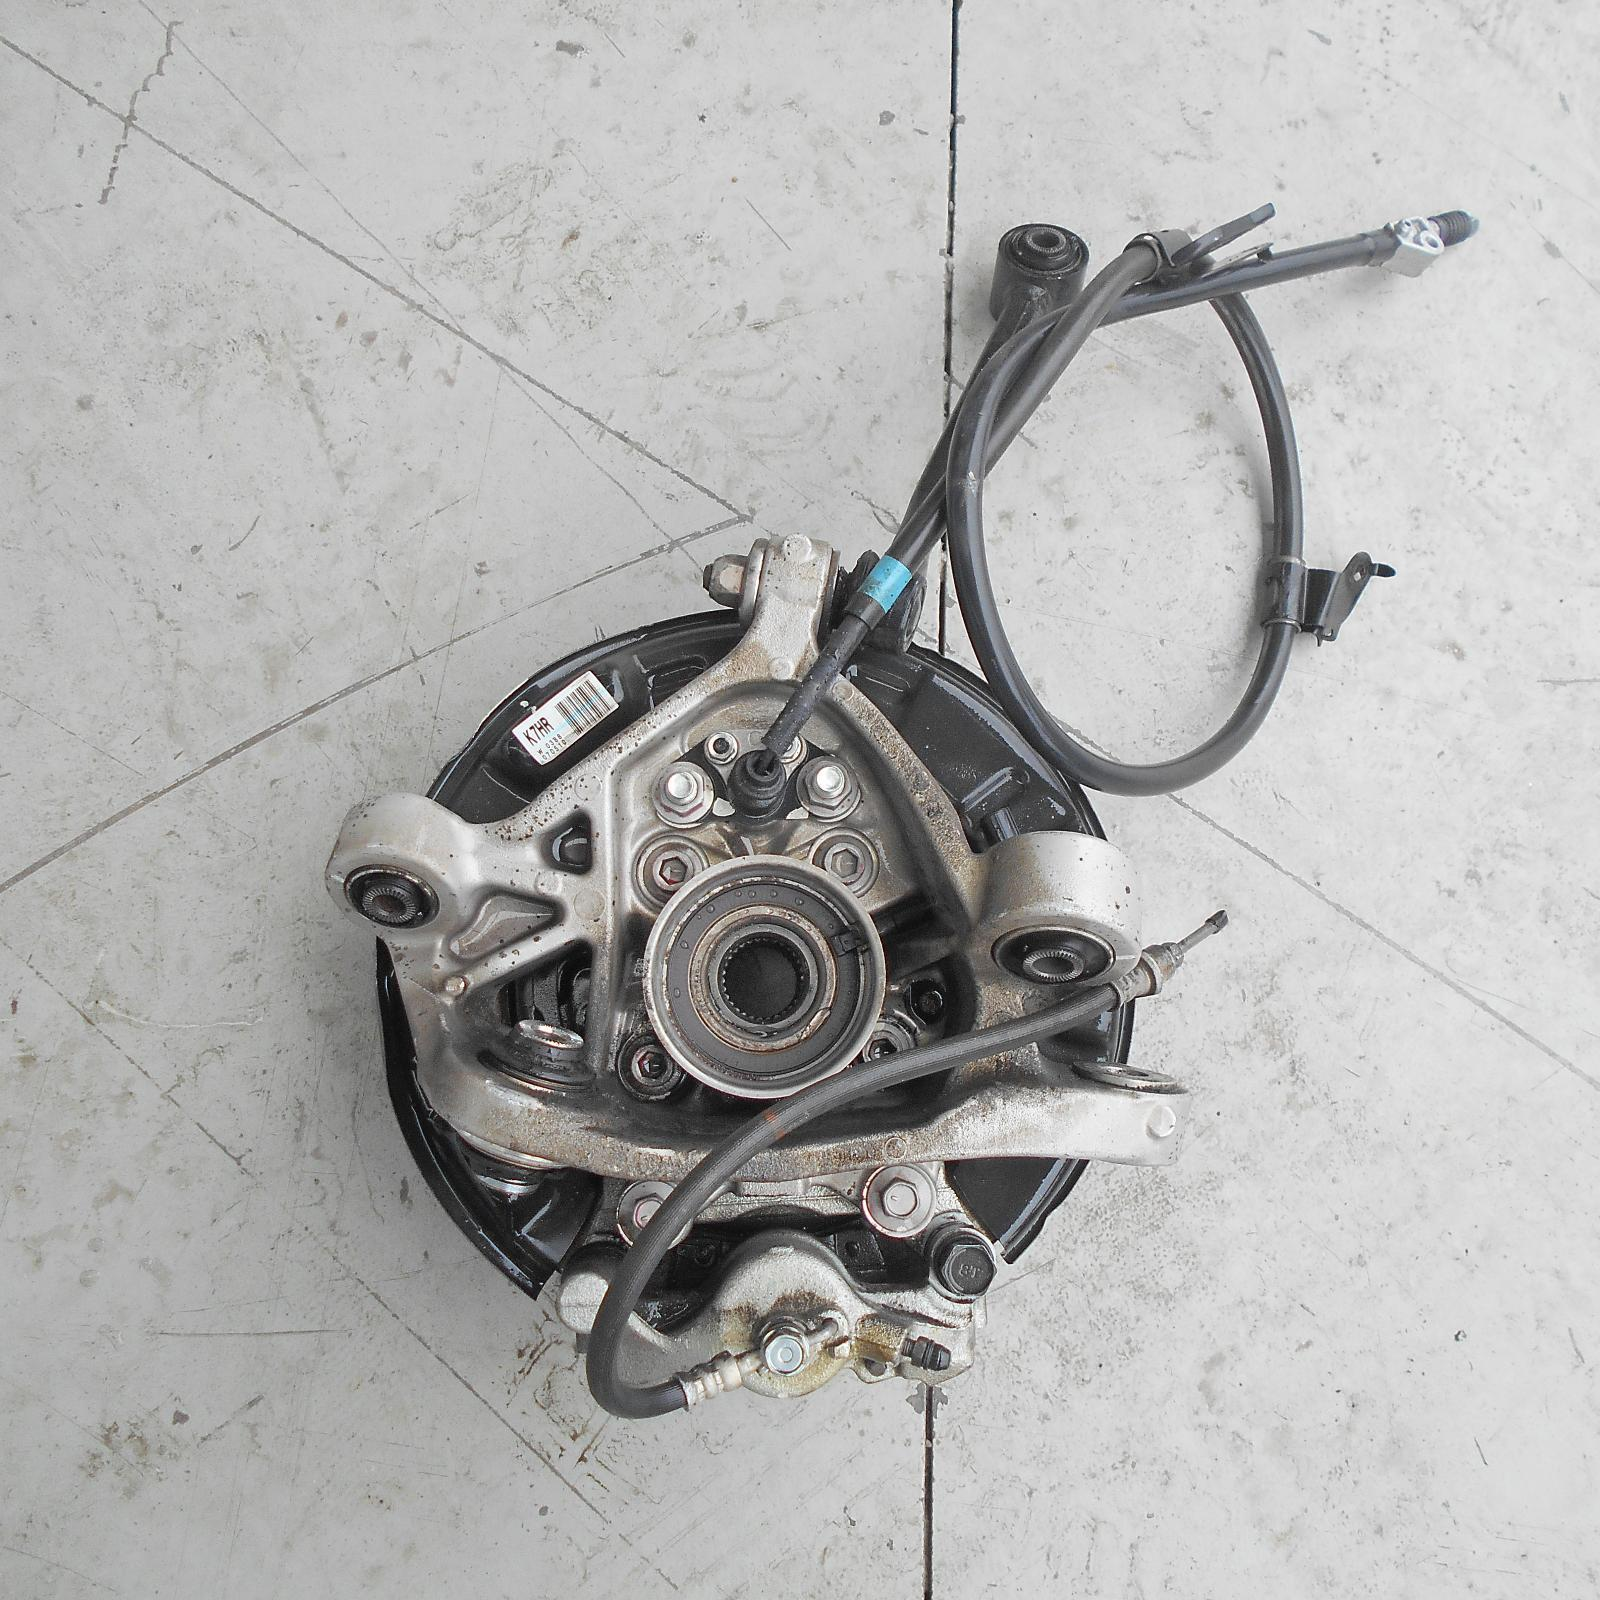 LEXUS IS250/IS250C, Right Rear Hub Assembly, GSE20R 11/05-07/13